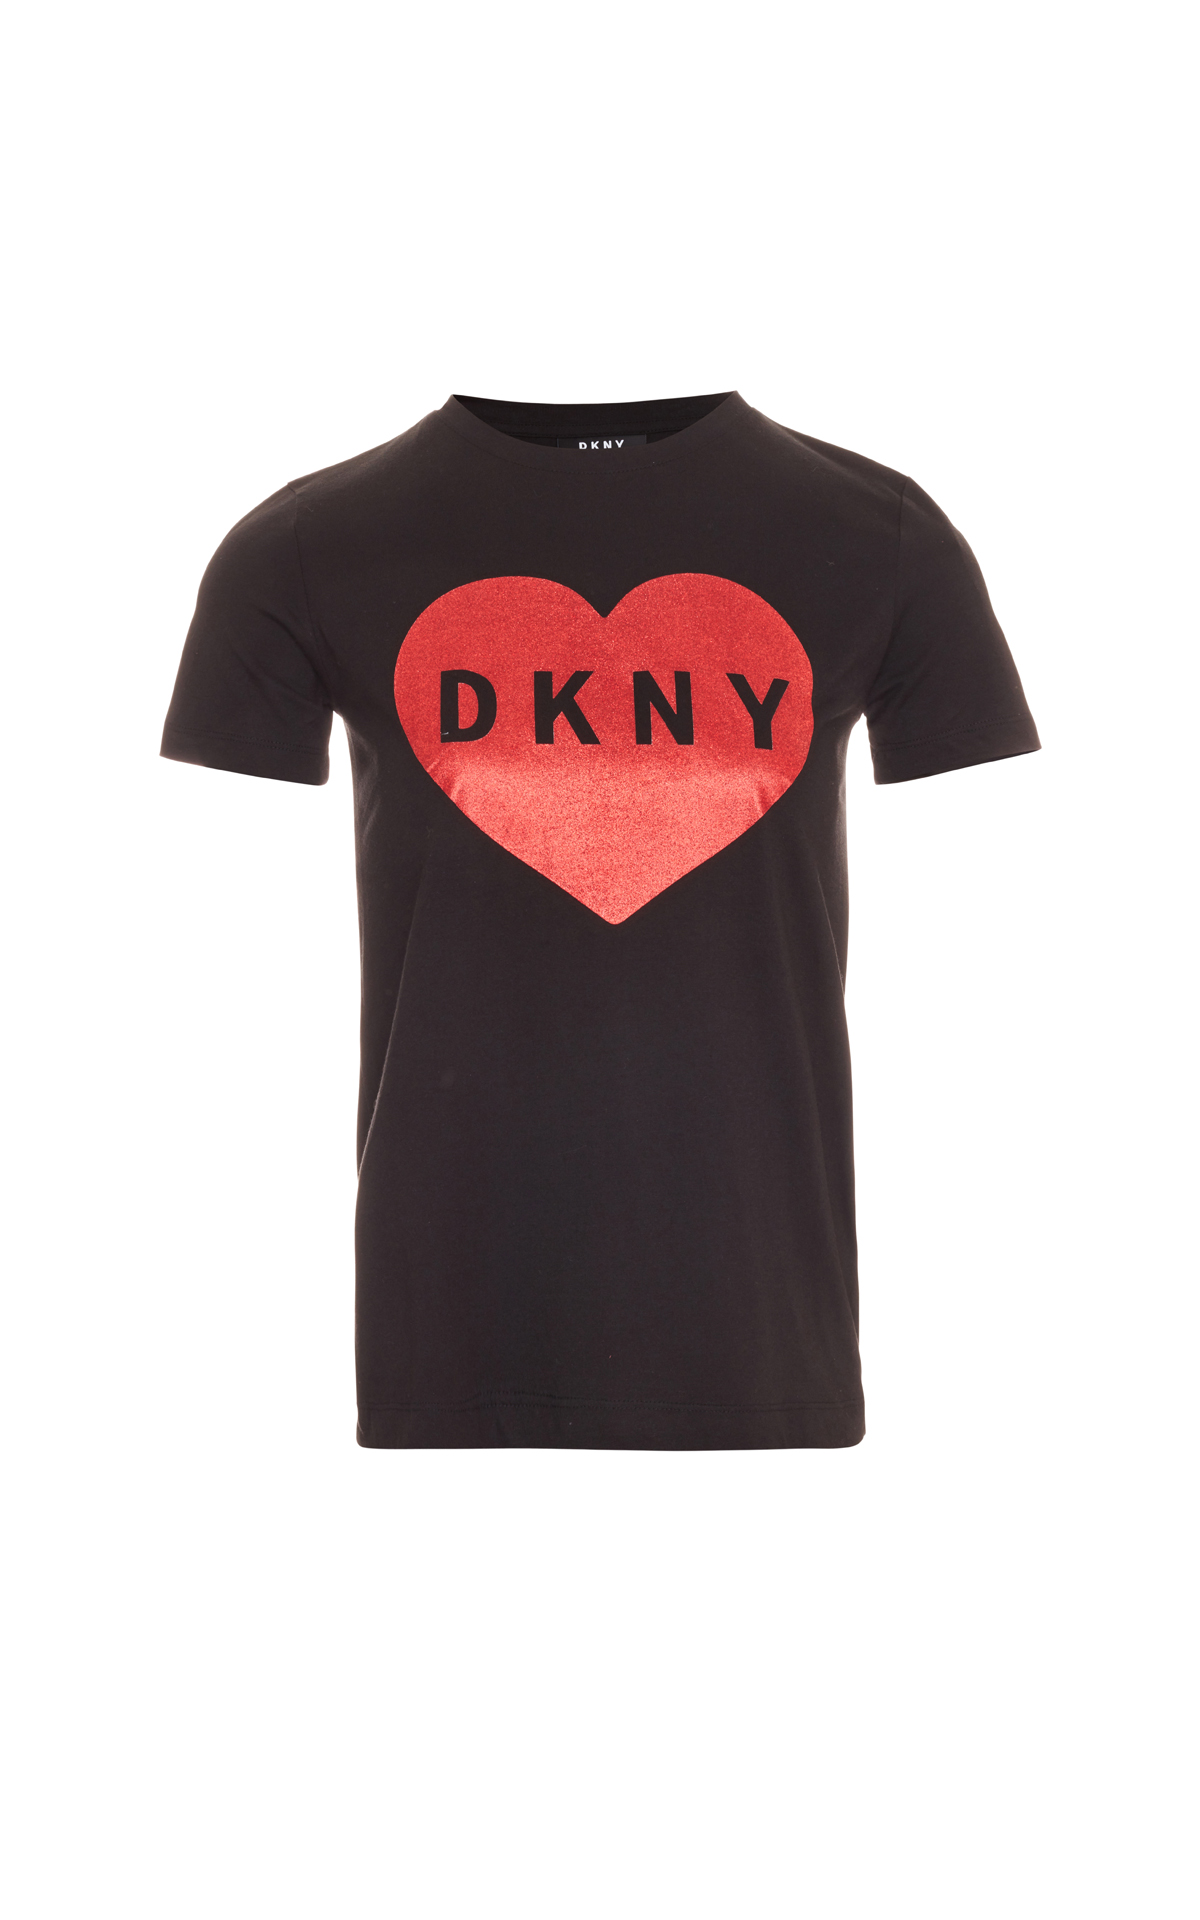 DKNY Heart tee from Bicester Village